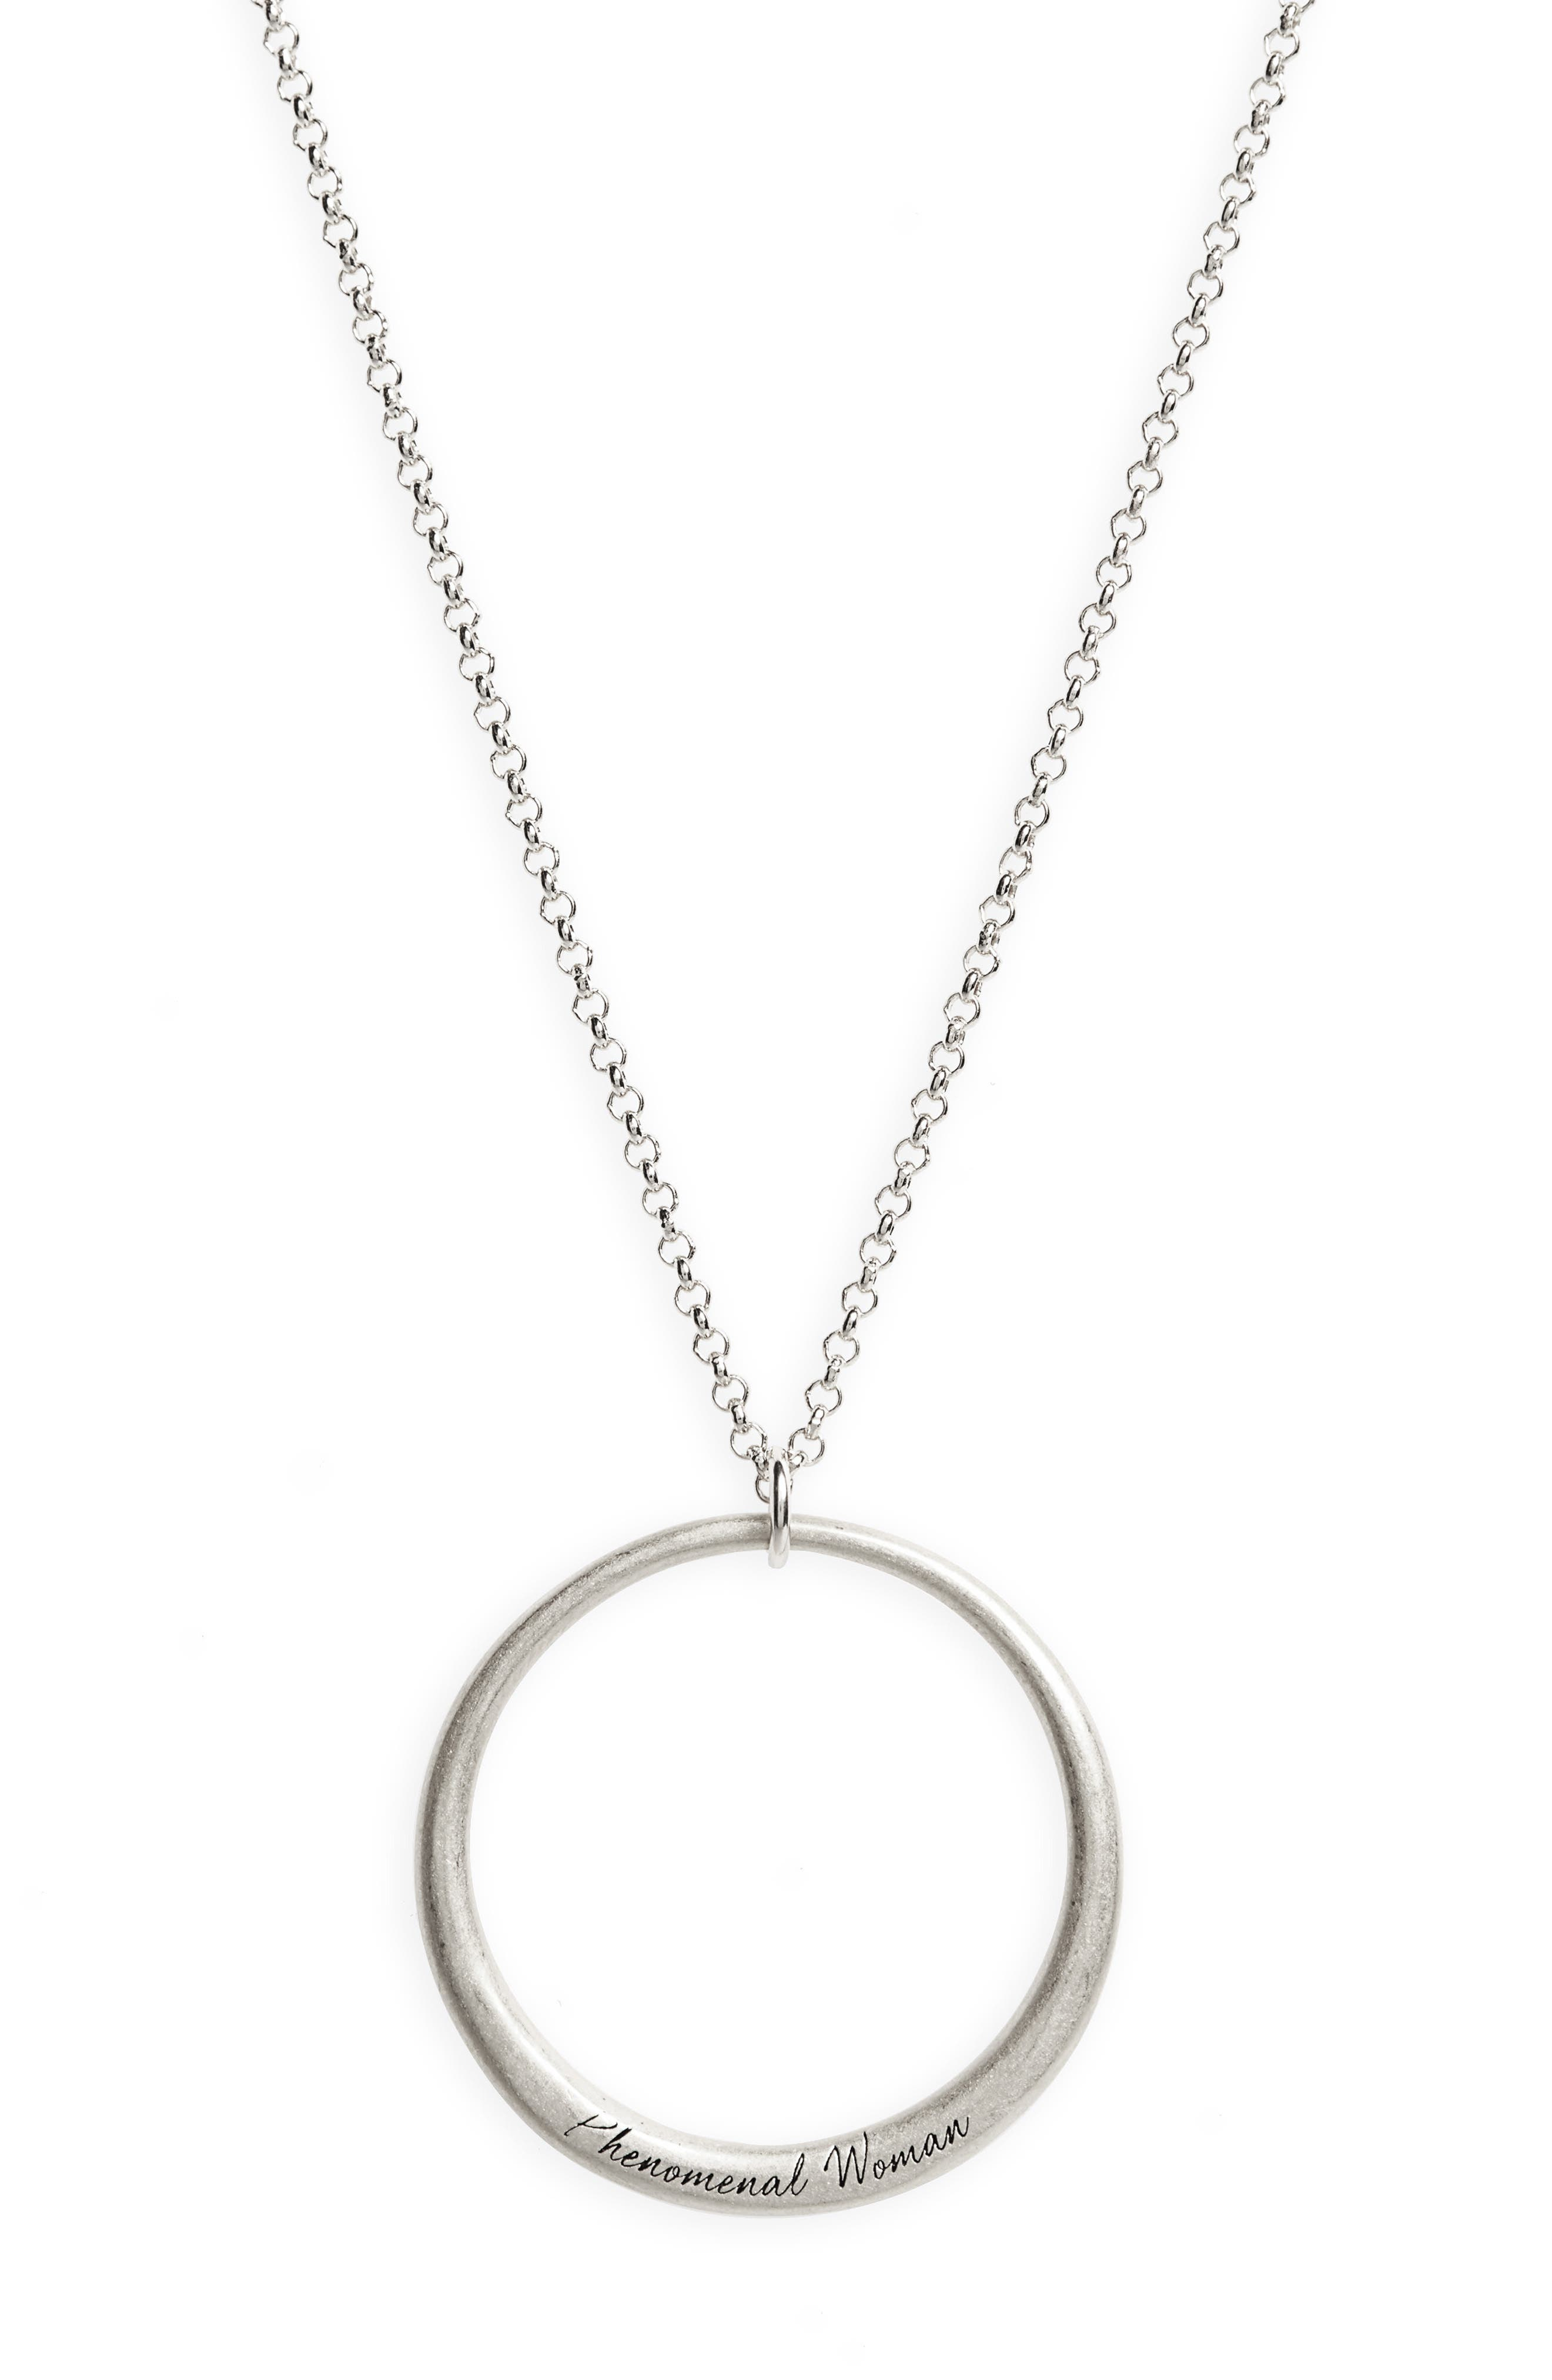 Legacy Collection - Phenomenal Women Open Circle Pendant Necklace,                             Alternate thumbnail 3, color,                             040